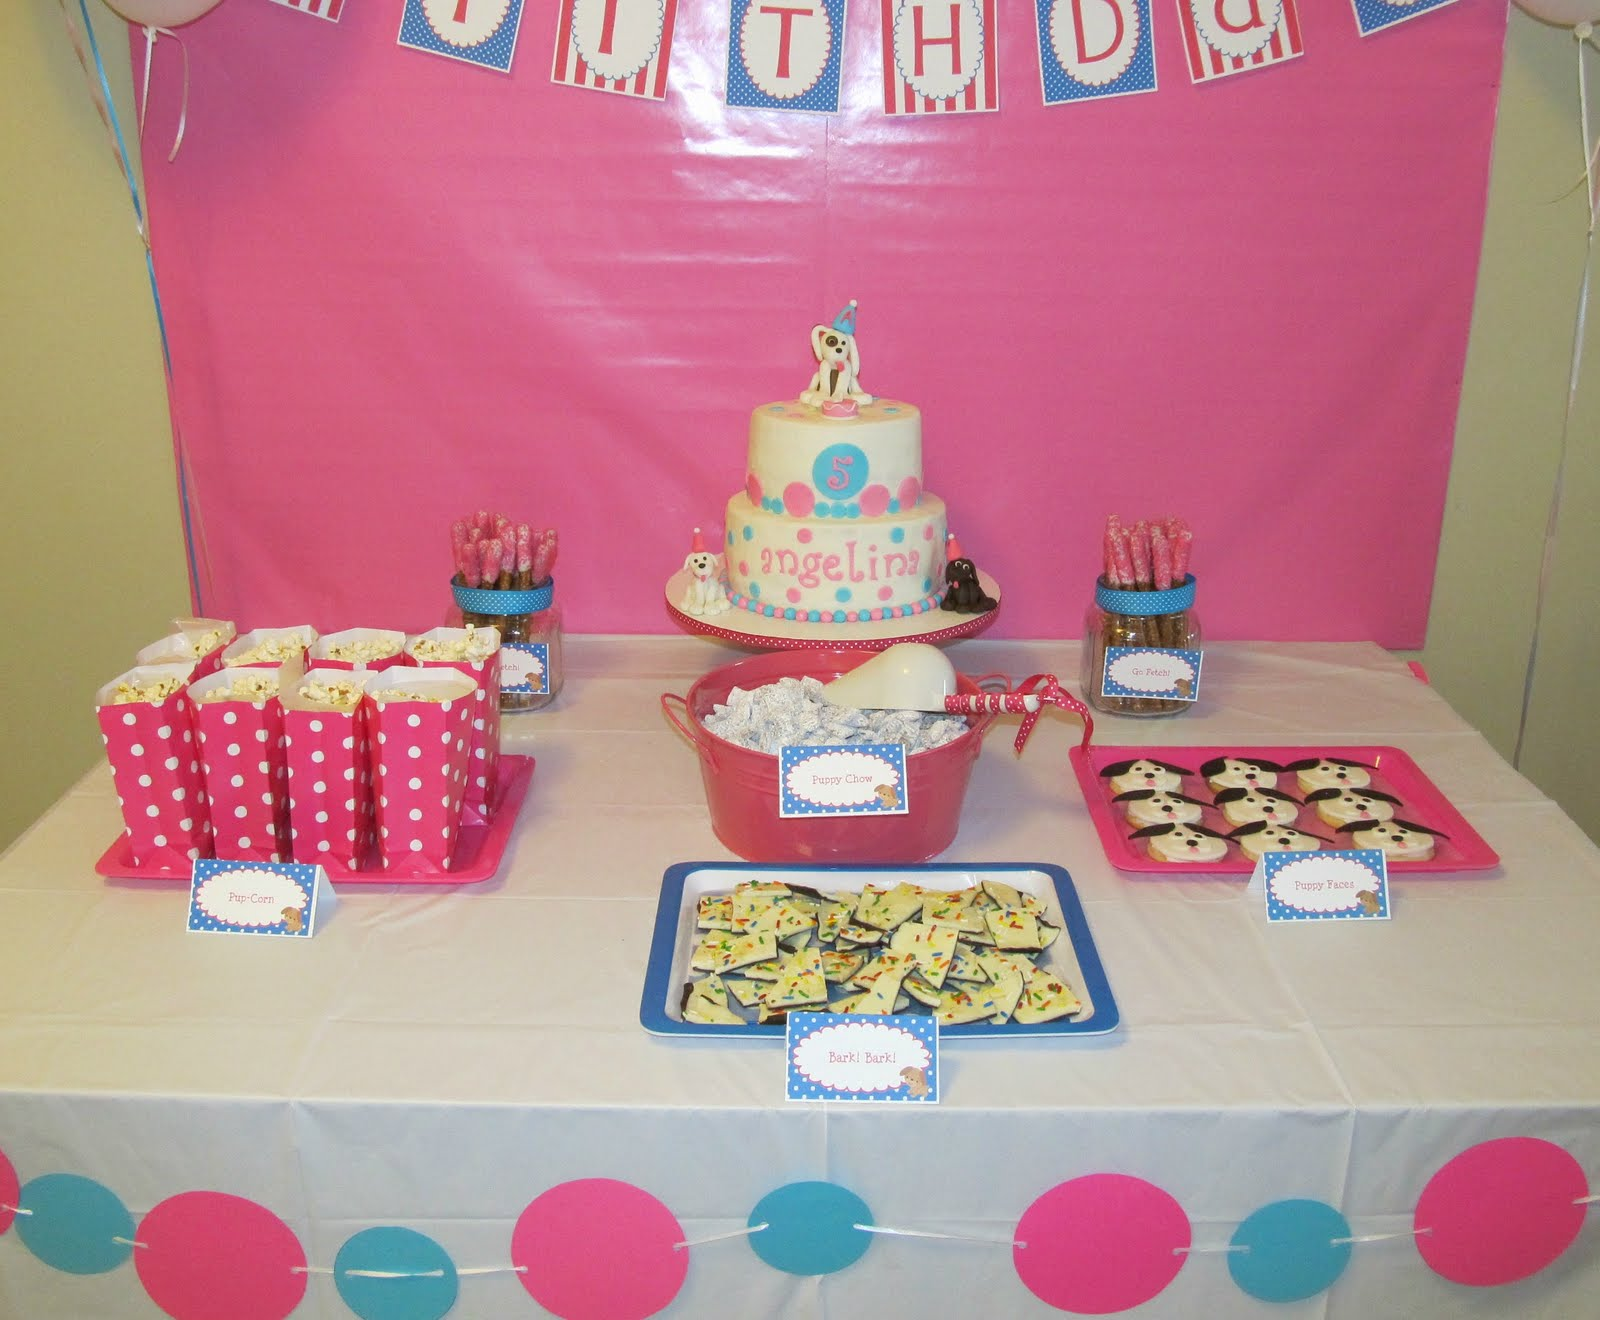 Birthday table decorations for girls - The Cake Itself Is A Gorgeous Decoration